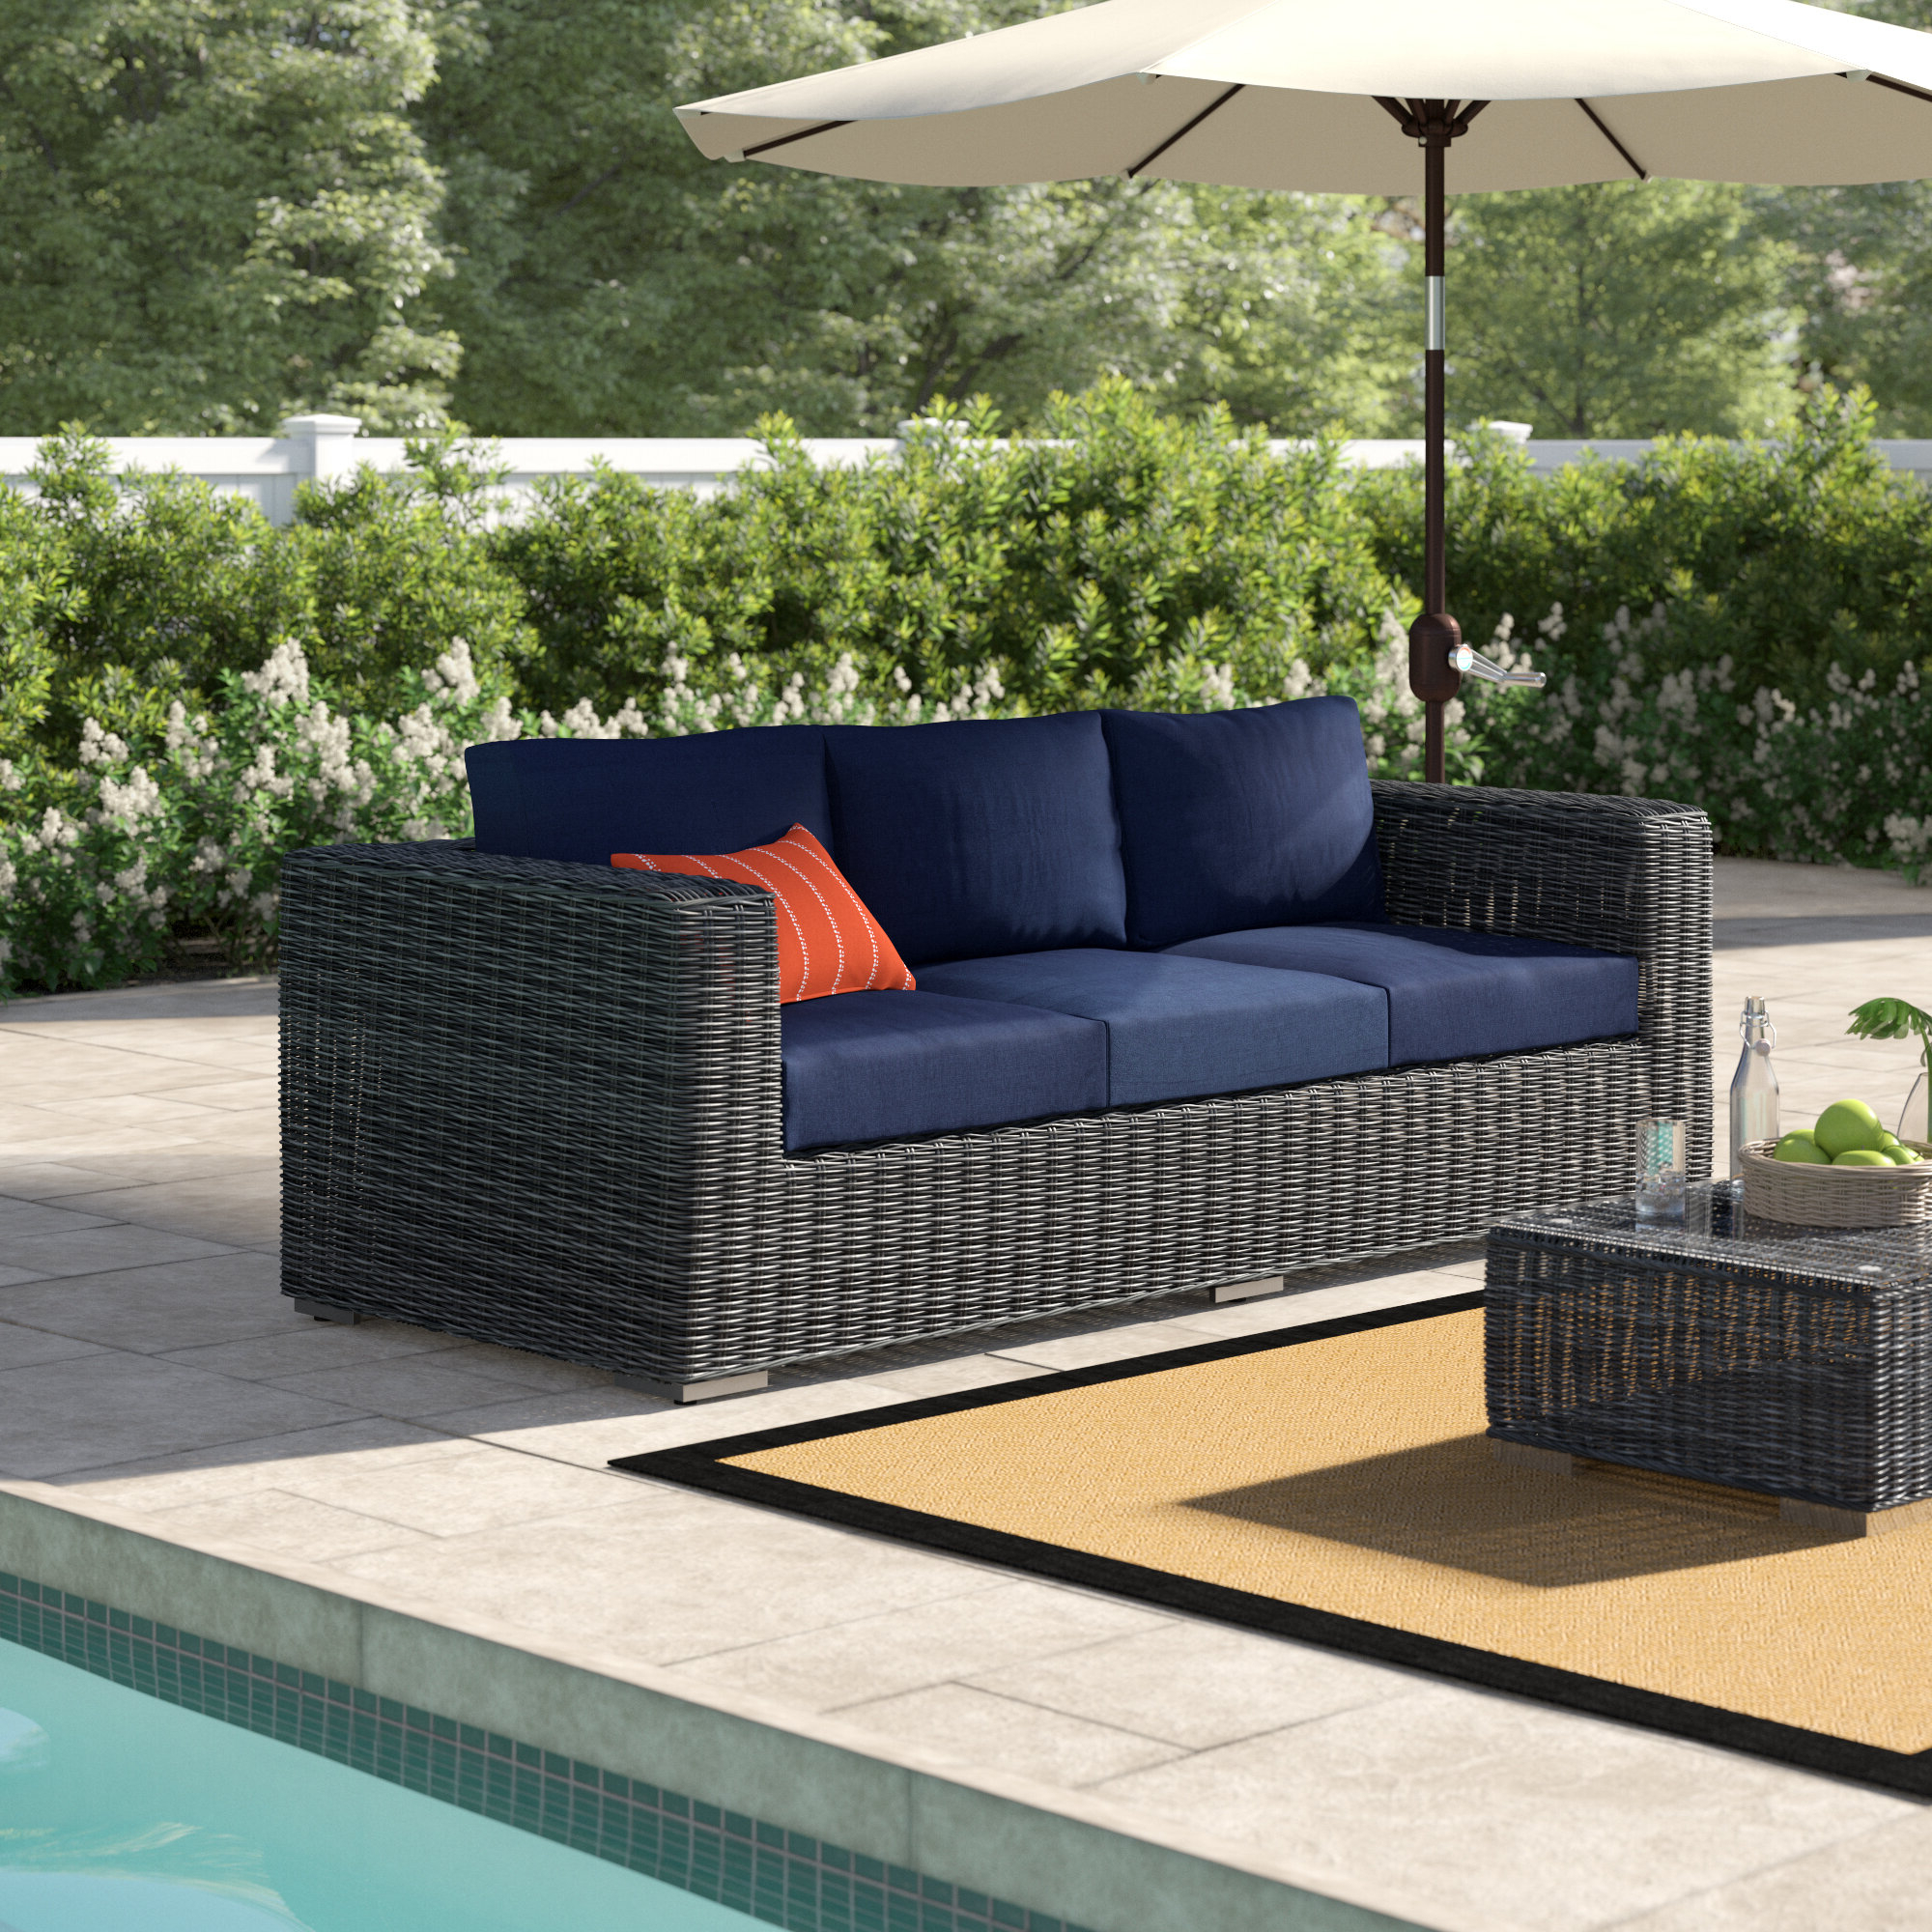 Most Up To Date Keiran Patio Daybeds With Cushions Intended For Keiran Patio Sofa With Cushions (View 5 of 20)